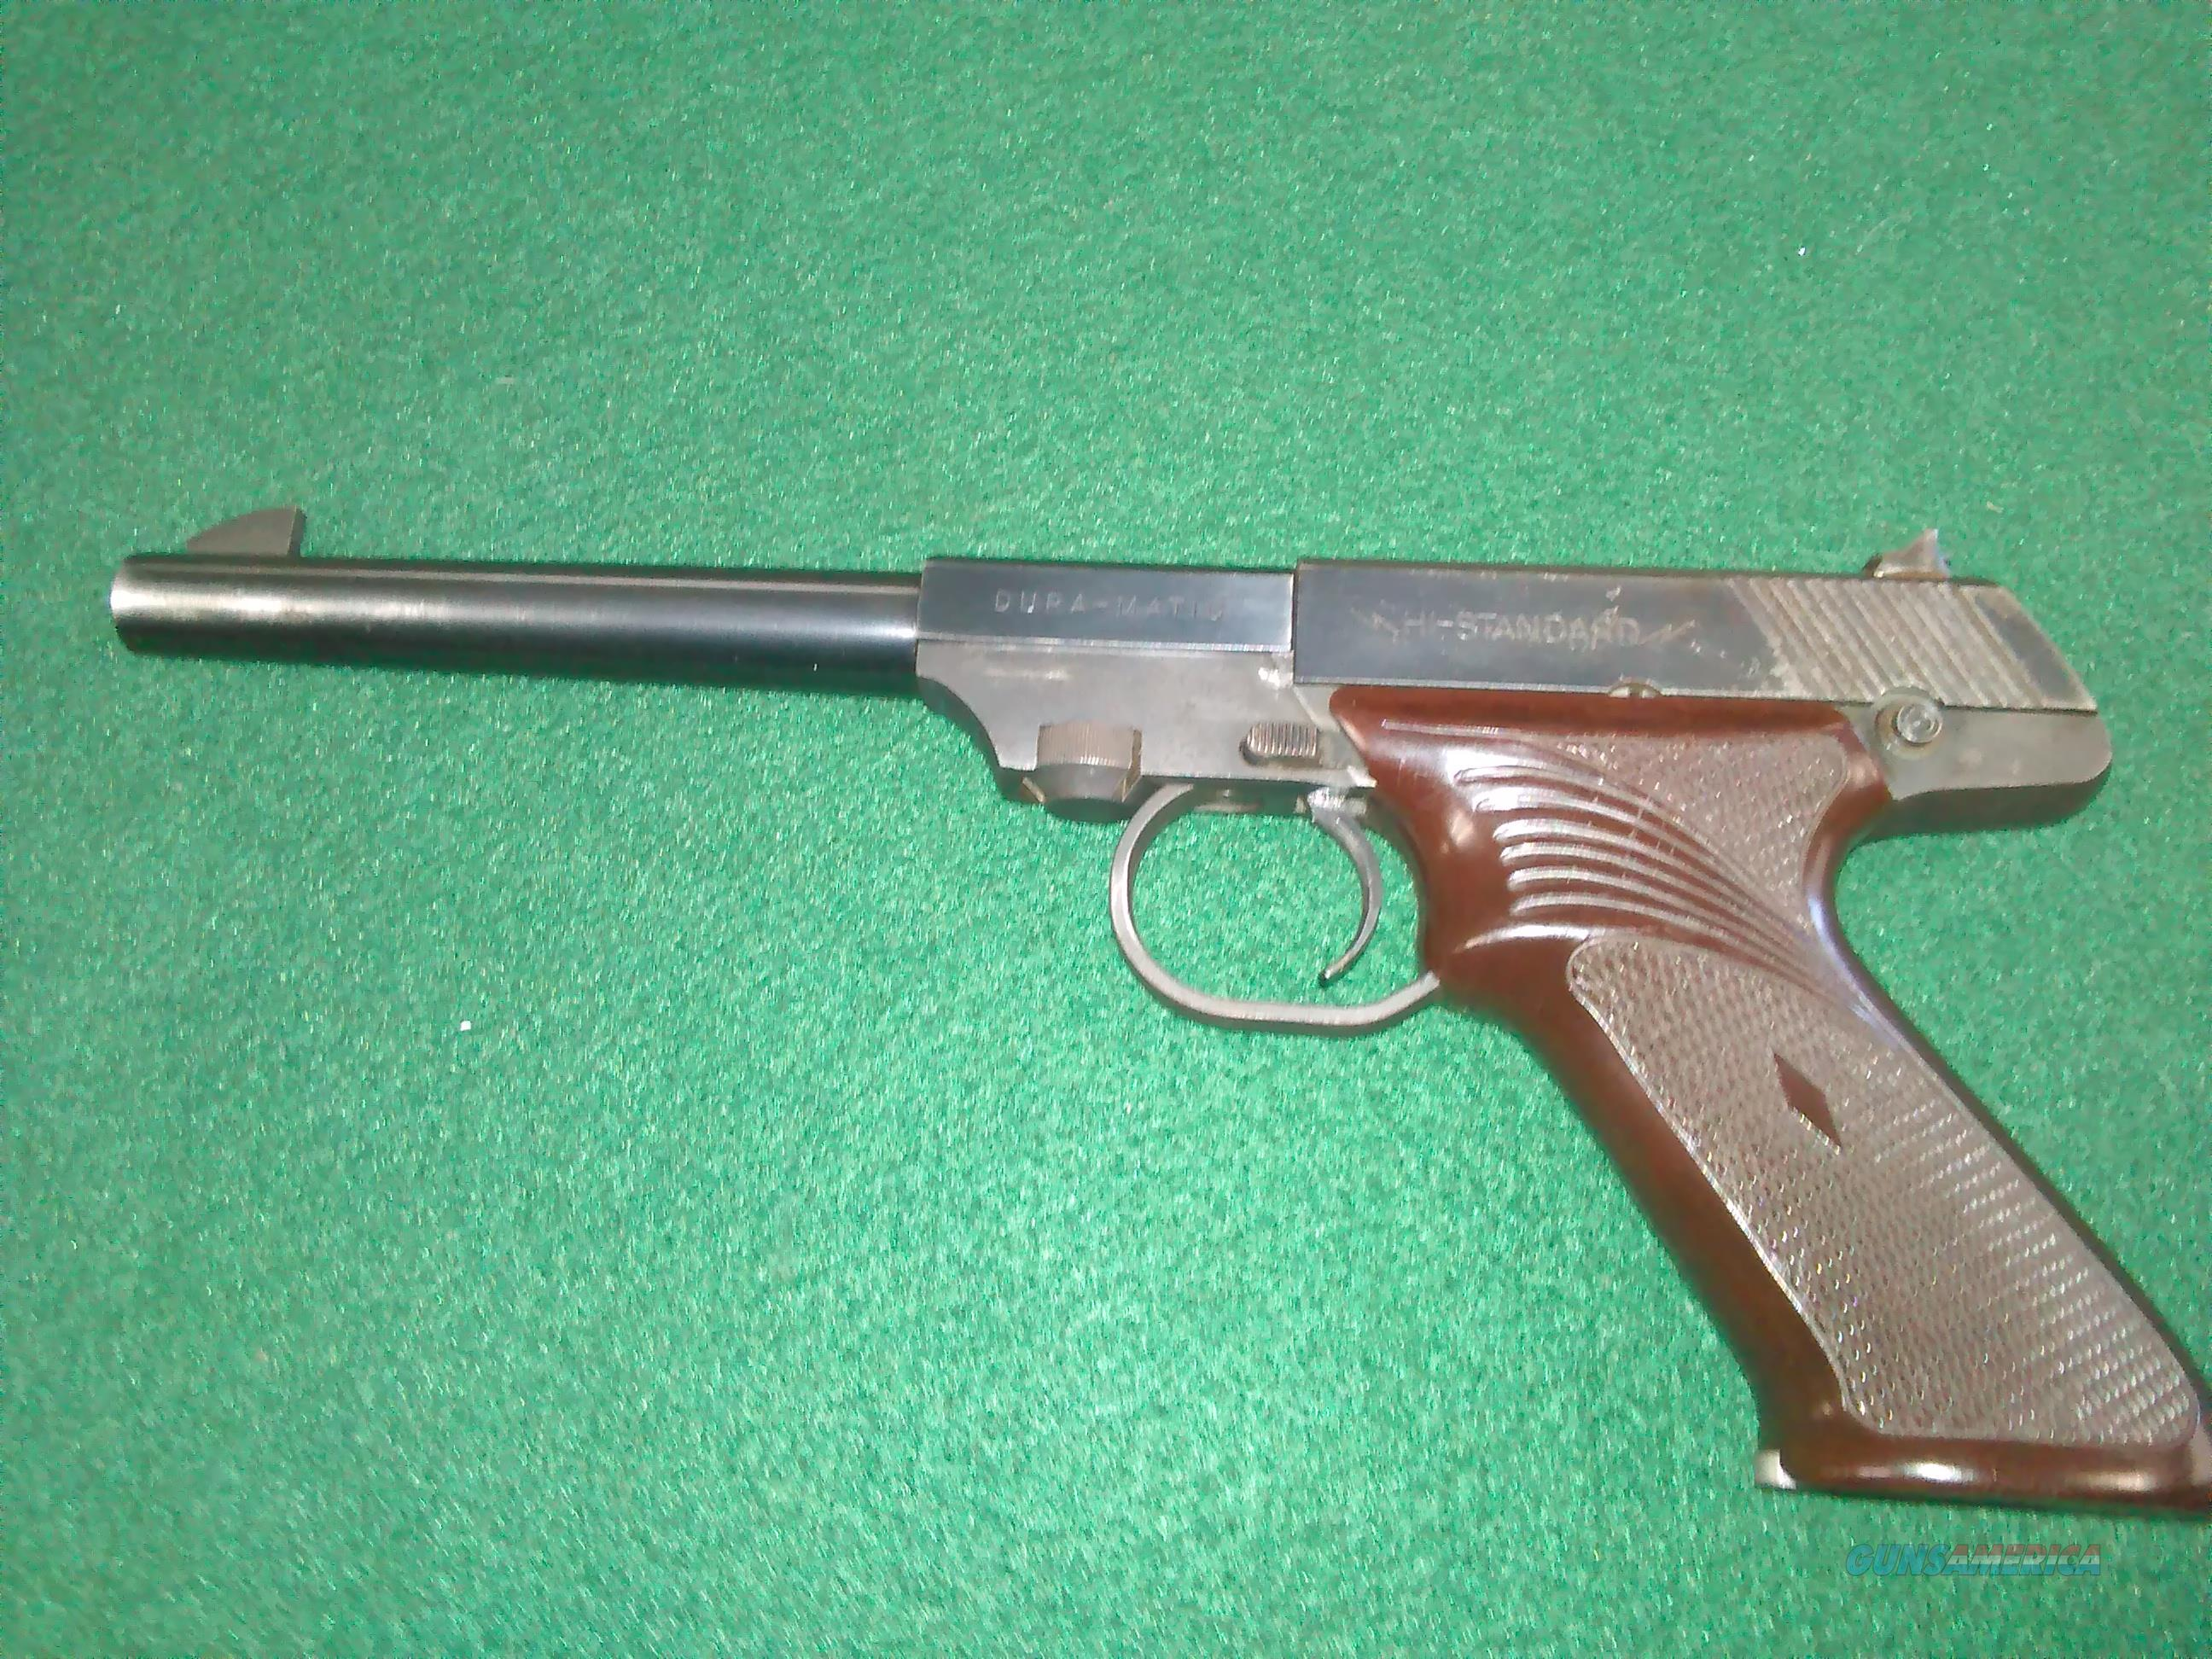 HIGH STANDARD MODEL M-100 MANUFACTURED 1954  Guns > Pistols > High Standard Pistols